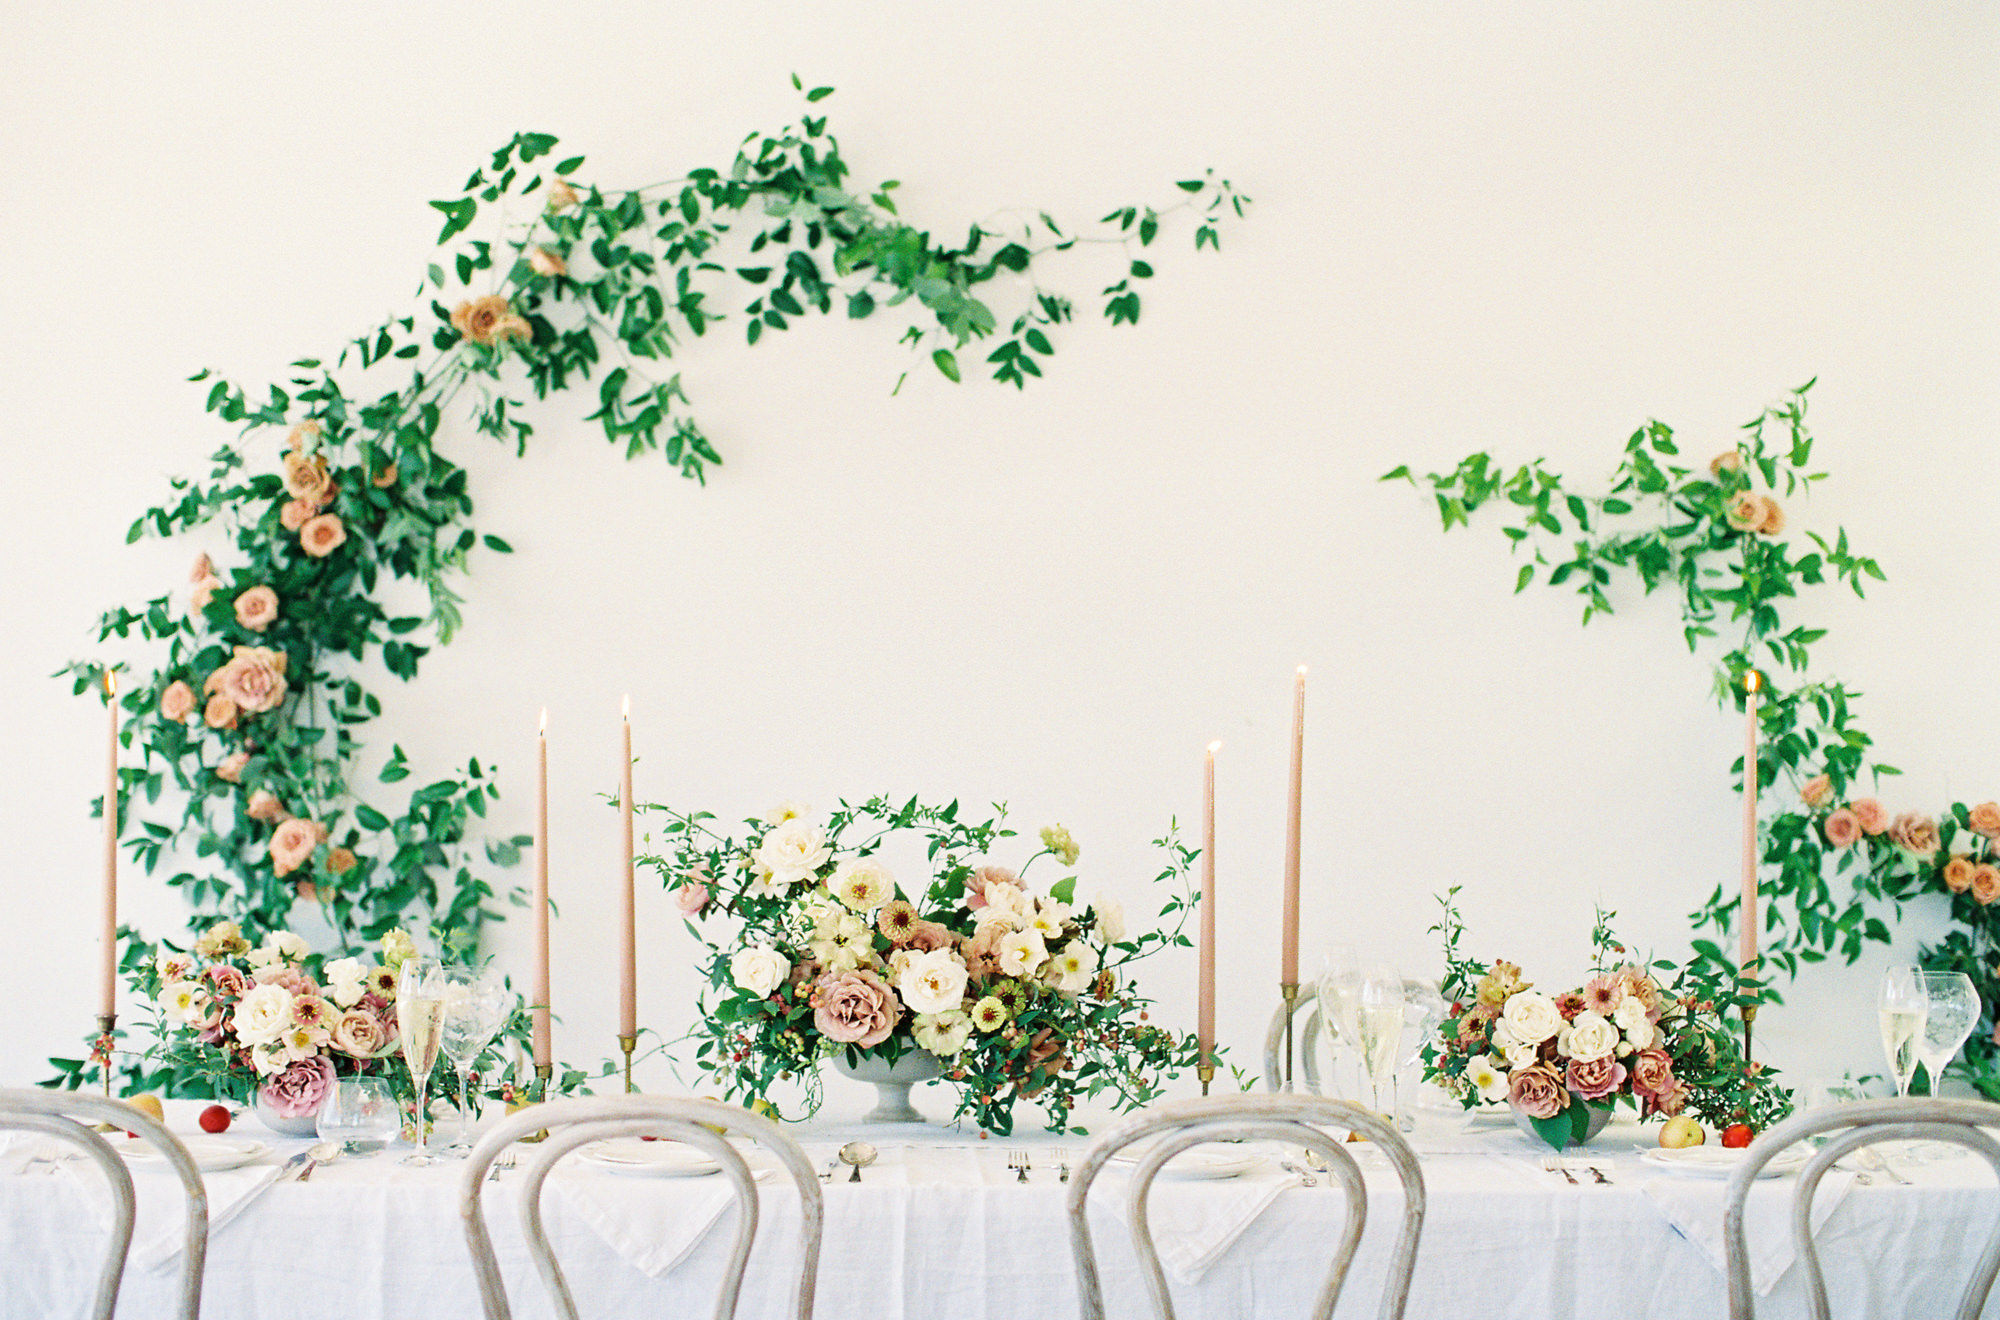 Ivy and rose centerpieces table decor Jen Huang Los Angeles wedding photographer